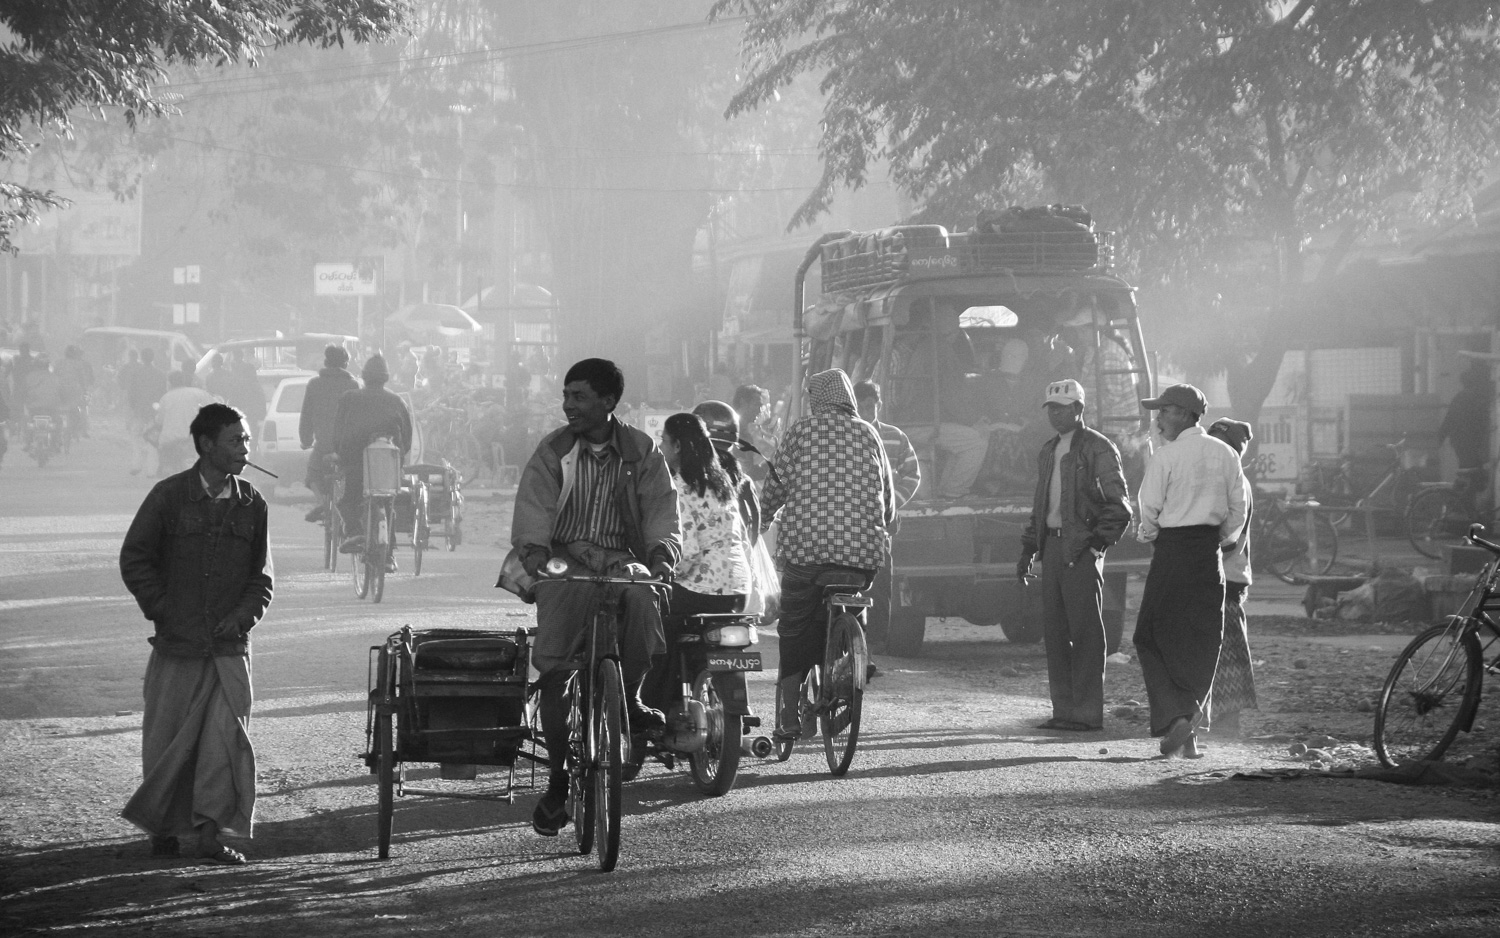 Morning pedestrian, bicycle, and motorbike traffic in Myitkyina, Myanmar, the largest city in Kachin State